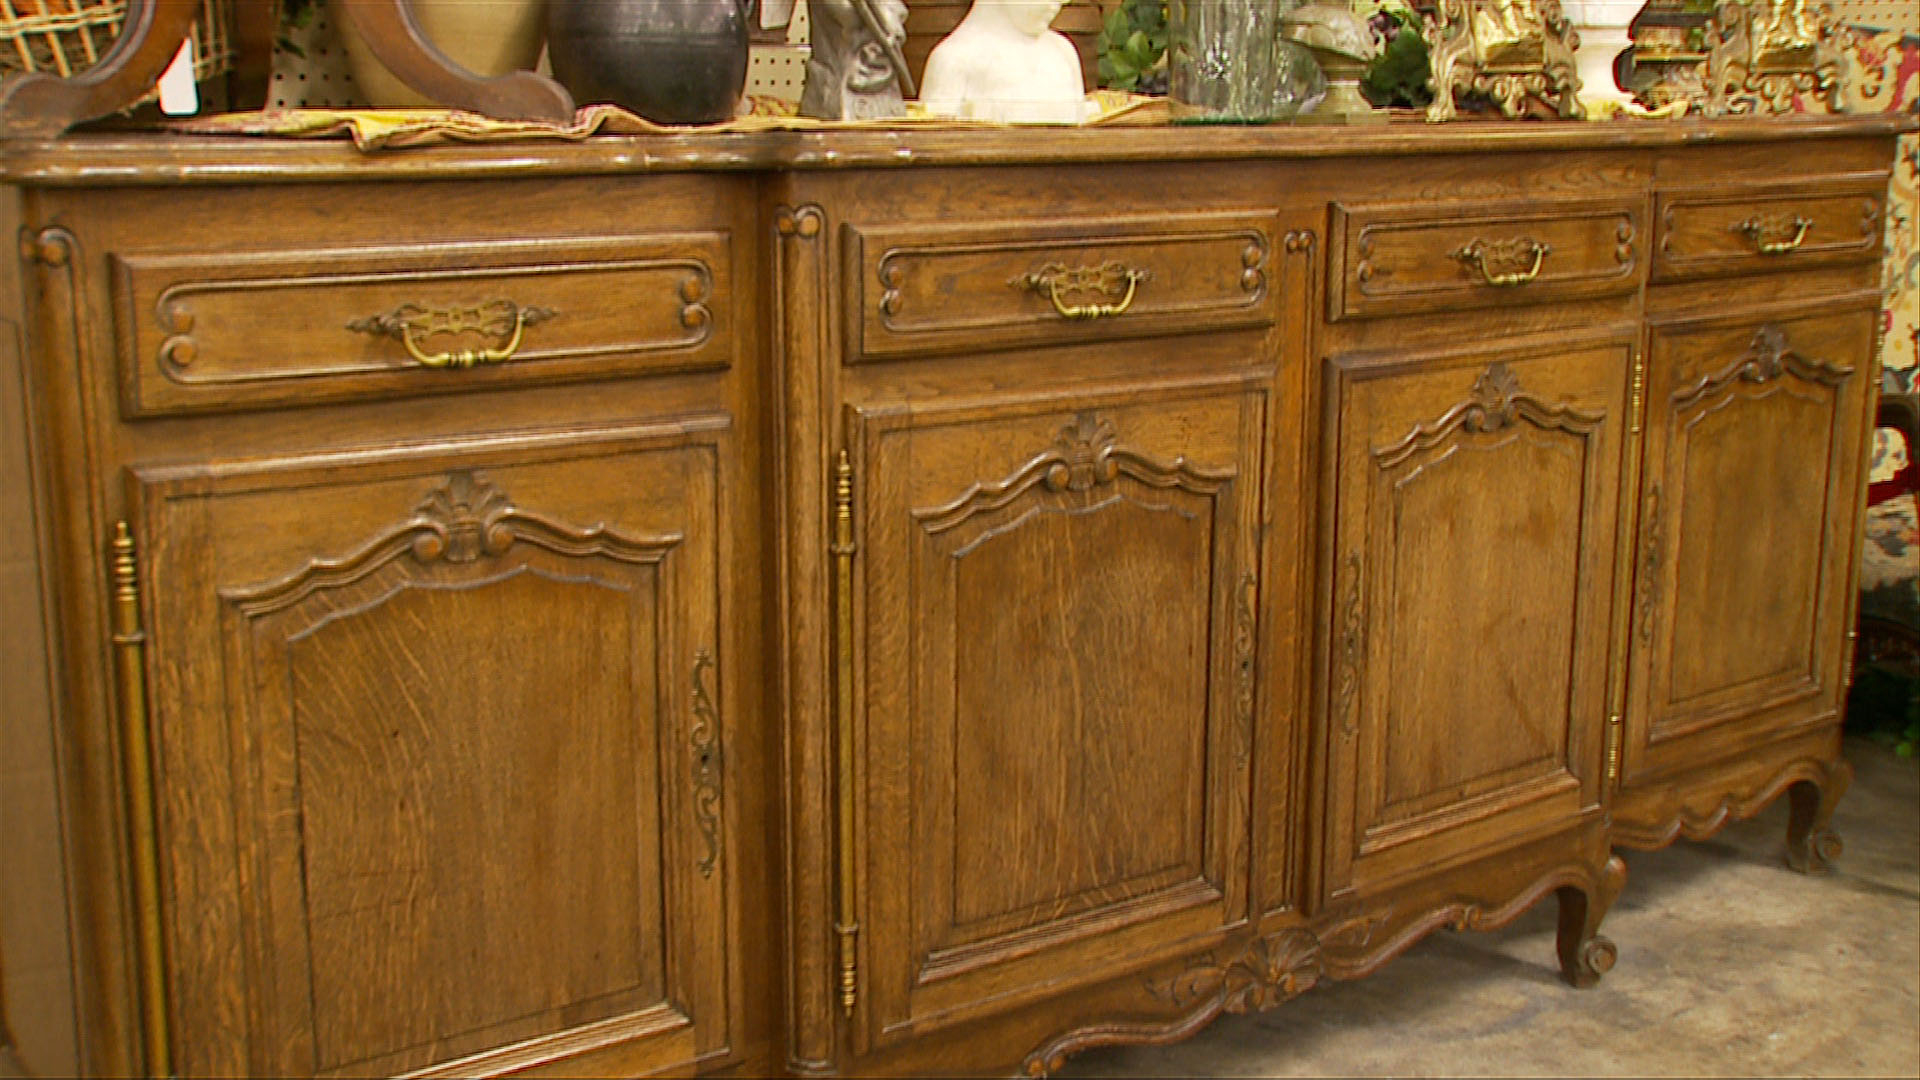 ... french country furniture decor artshop french country furniture decor